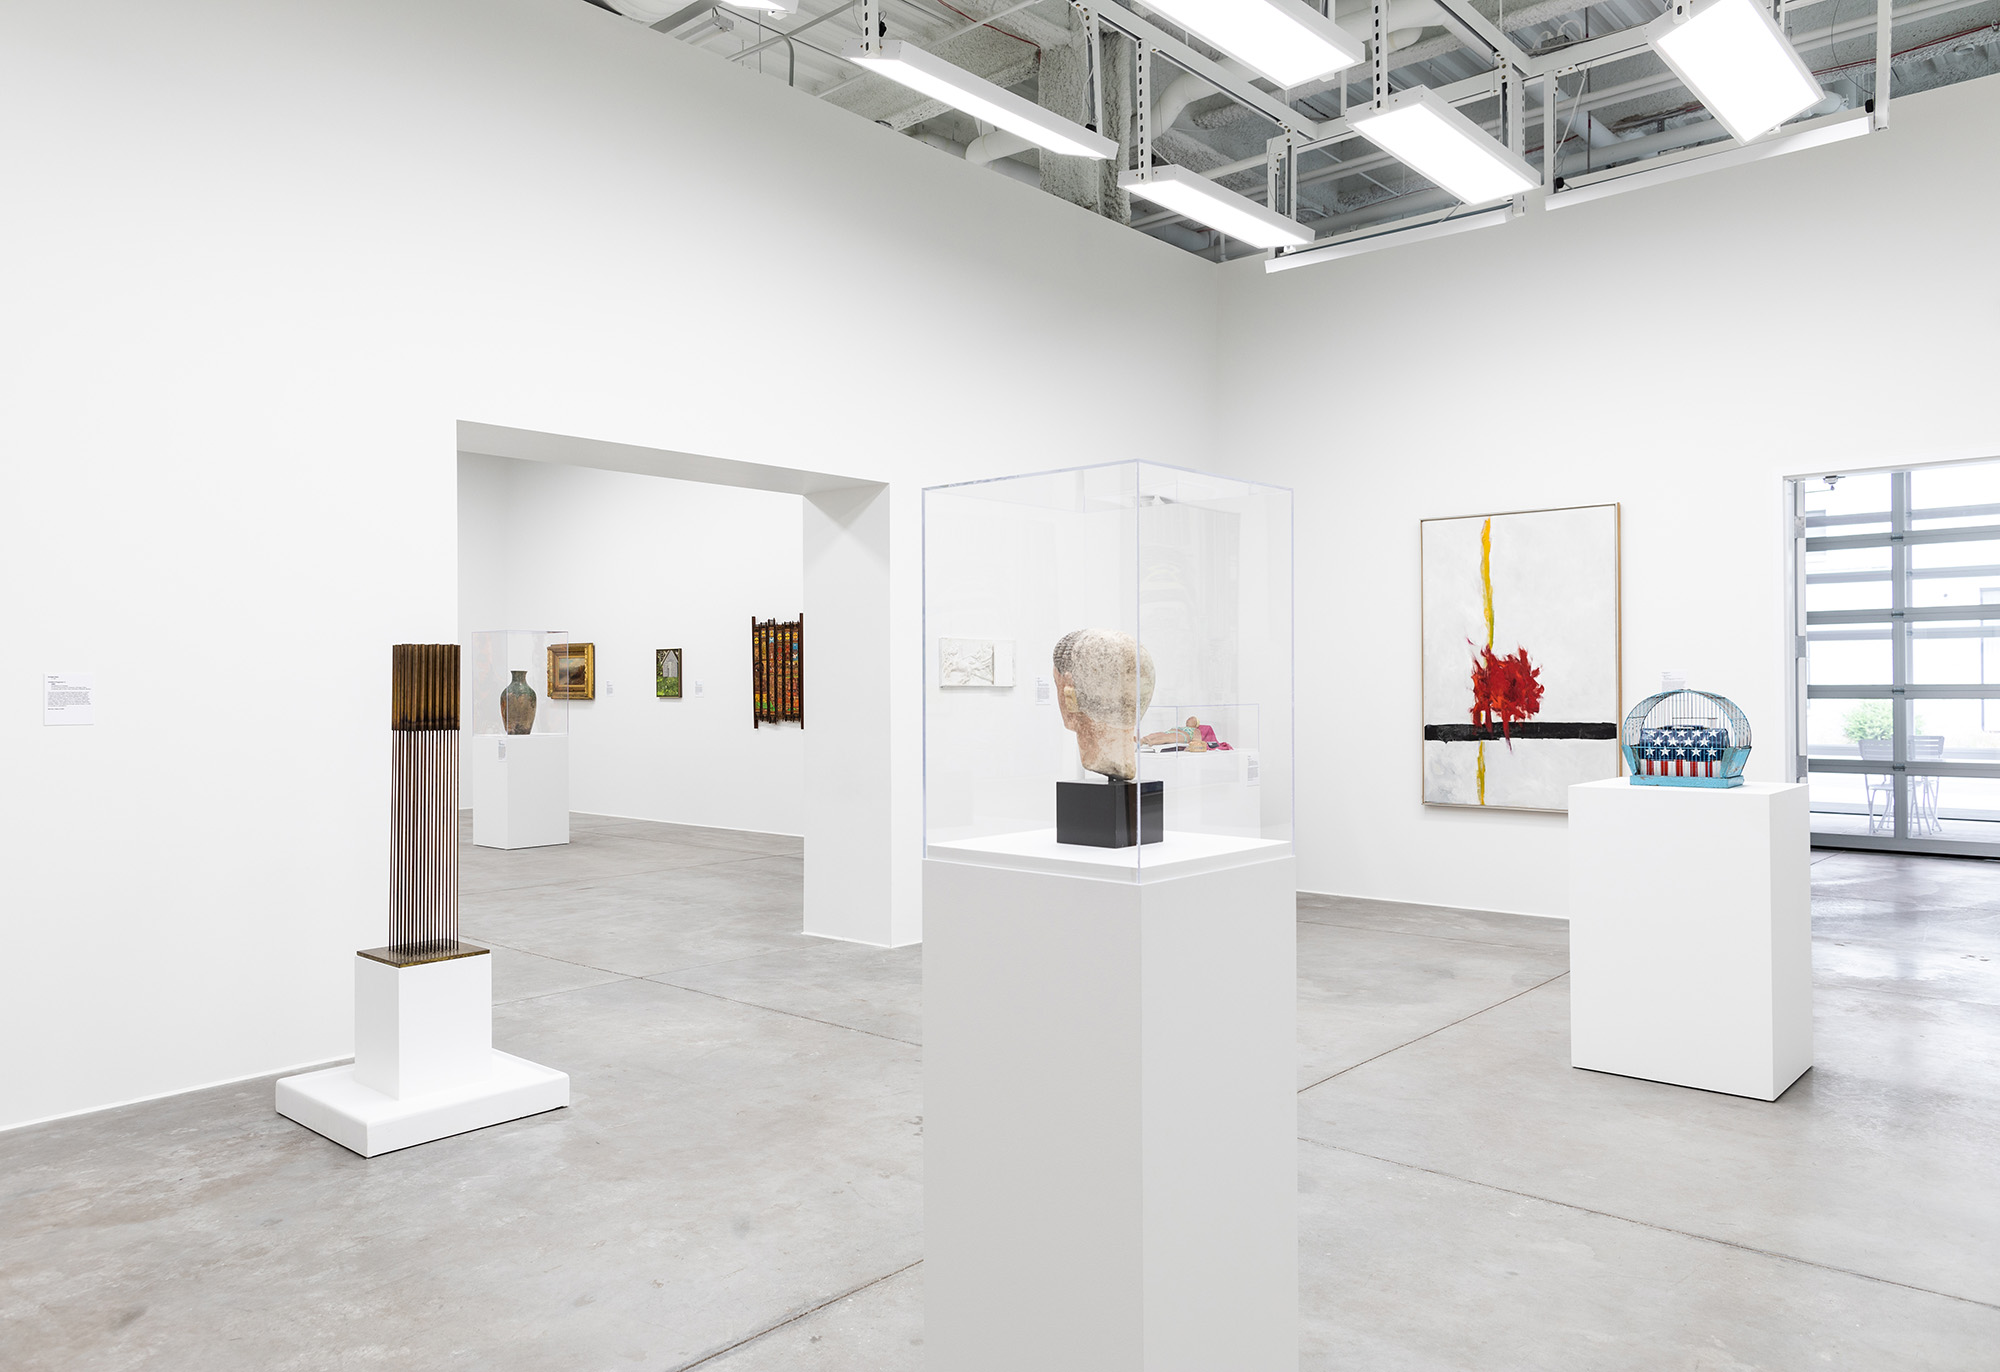 <i>Mining the Collection</i>, installation view at the MSU Broad Art Lab, 2018. Photo: Eat Pomegranate Photography